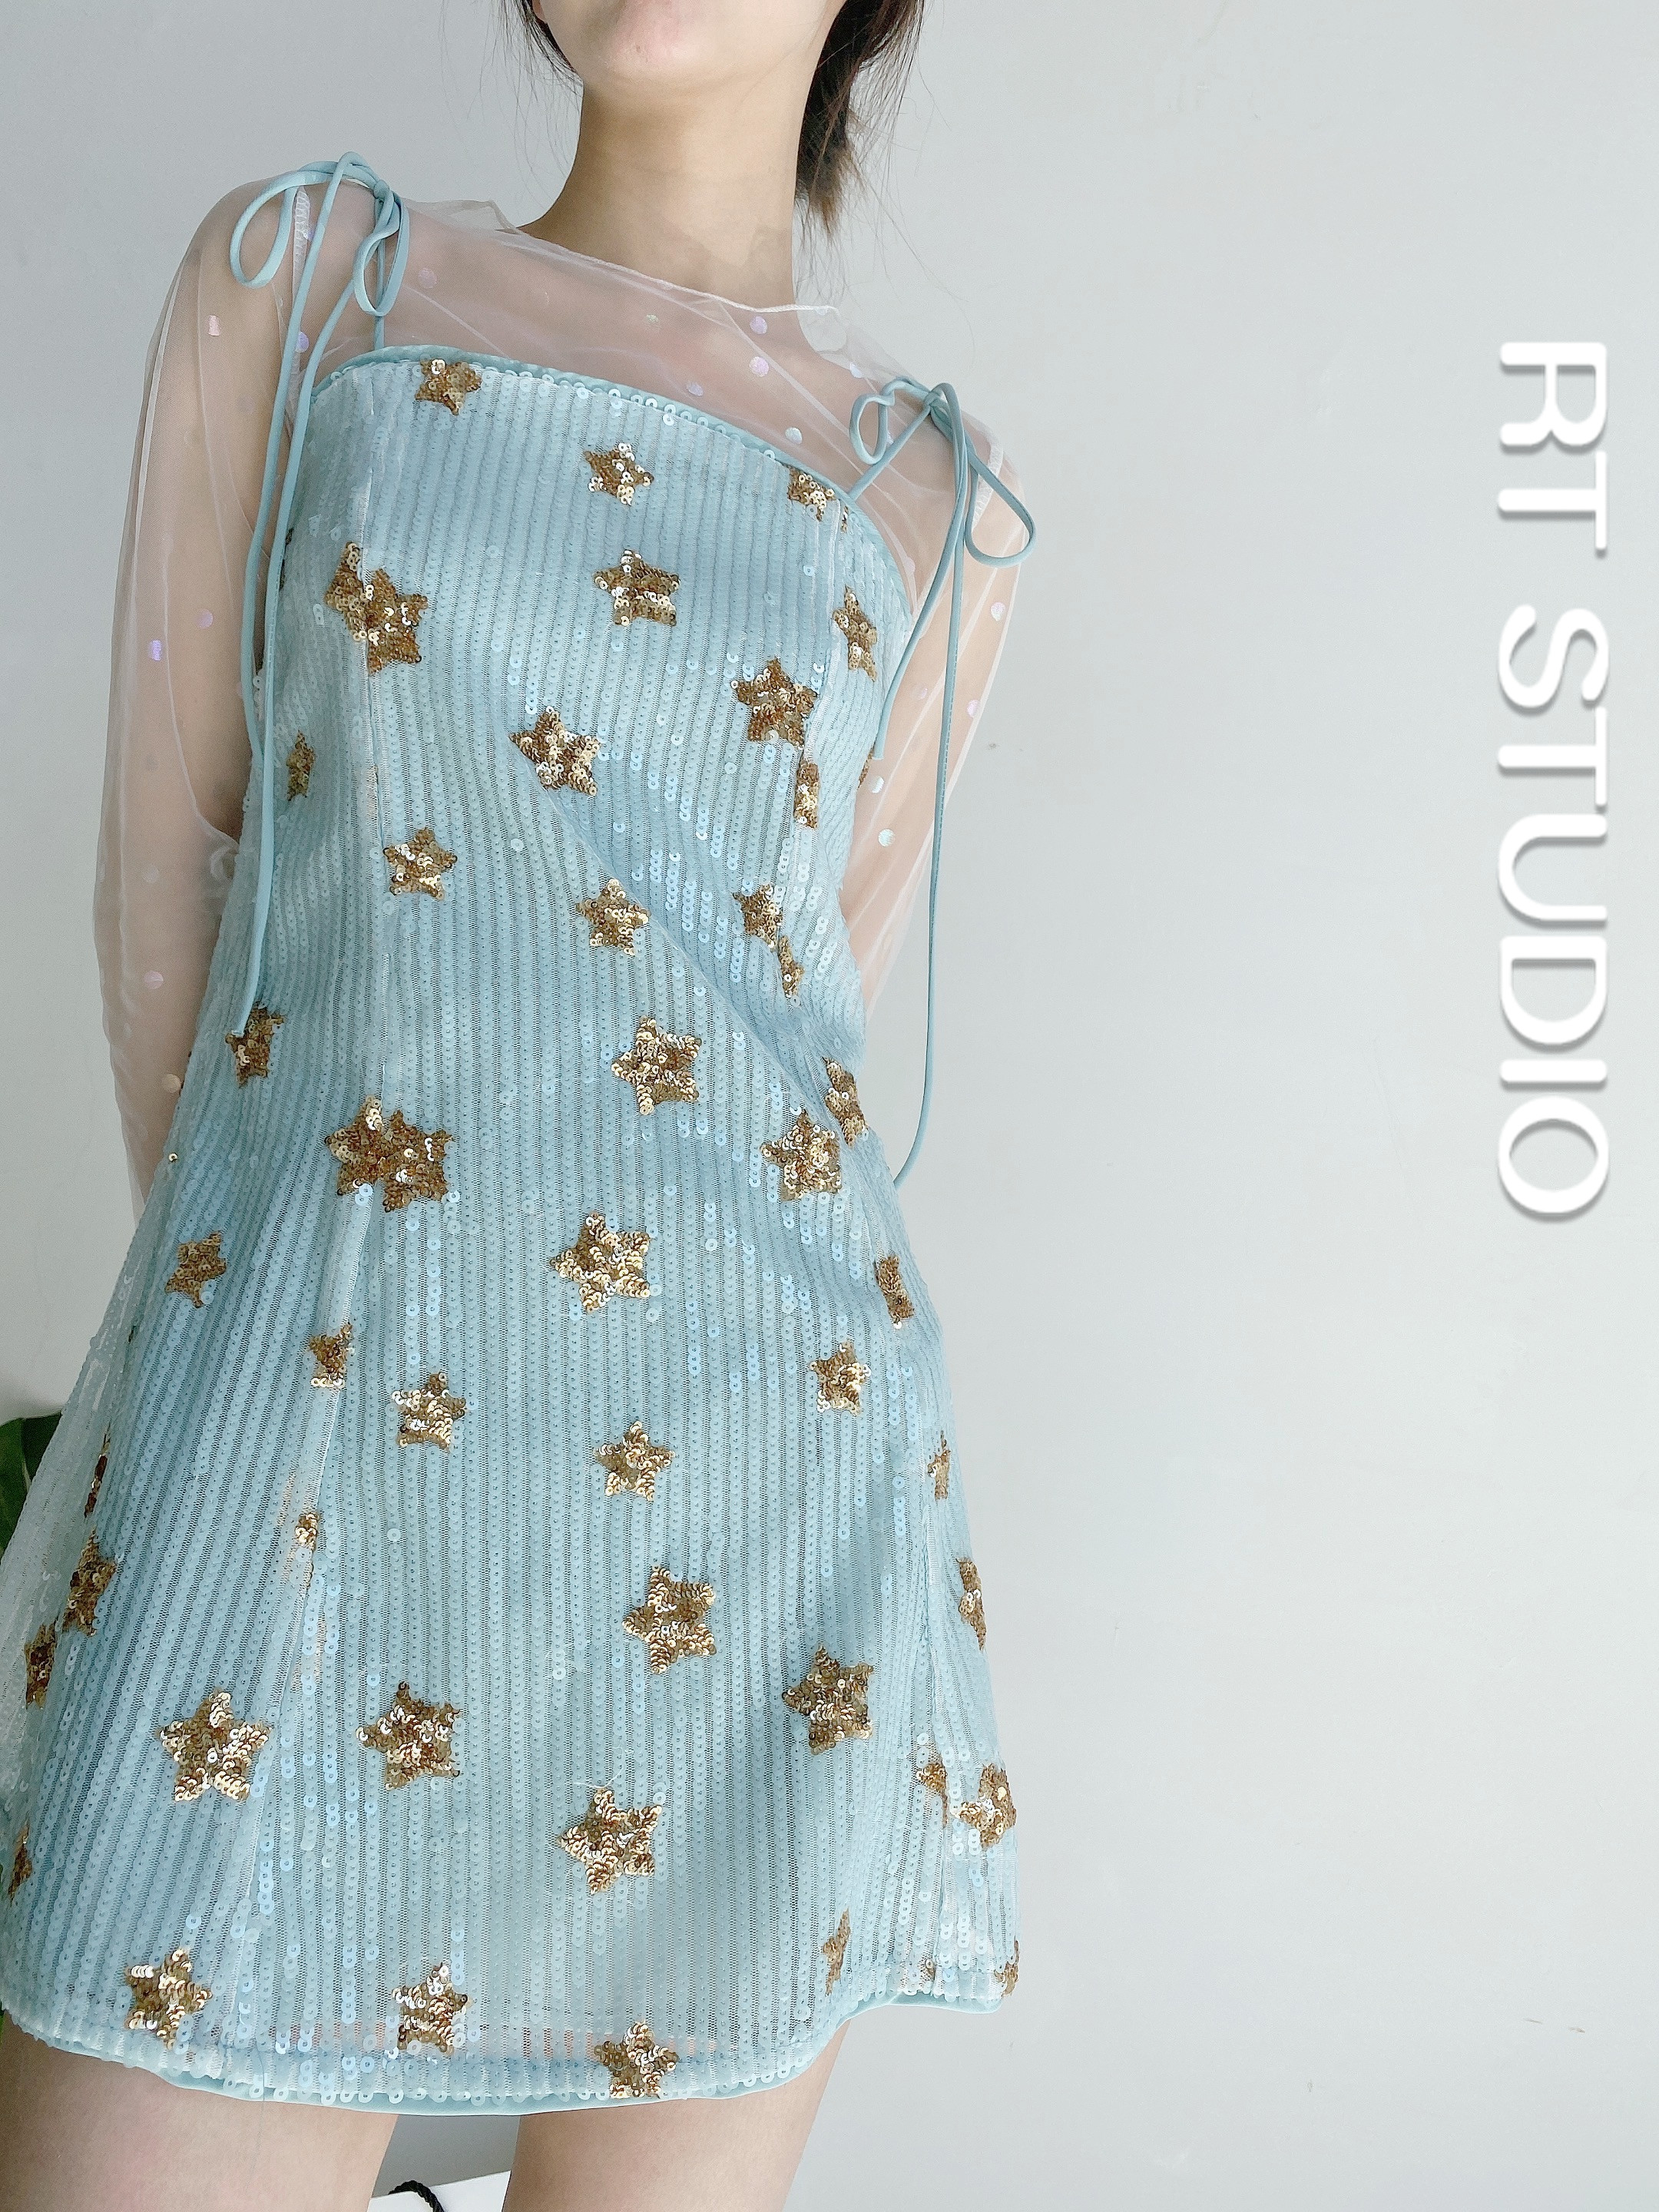 Rutong RT new lace up sweet gorgeous FAIRY DRESS star Sequin bow fresh fashion suspender dress